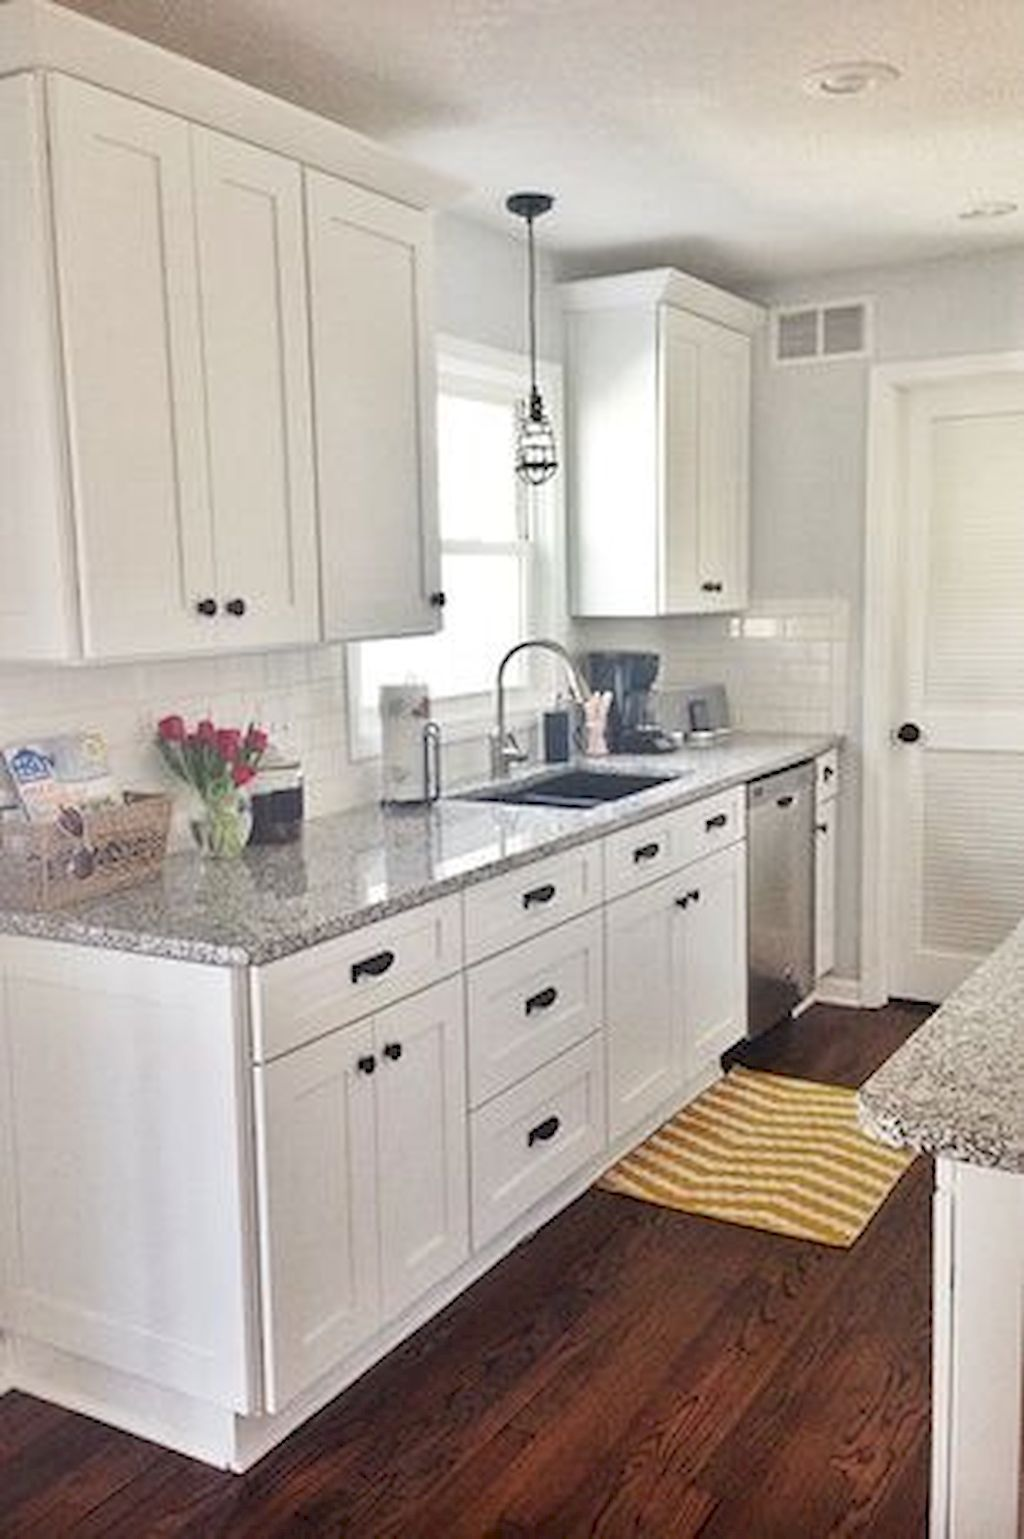 Best white kitchen cabinets decor ideas for farmhouse style